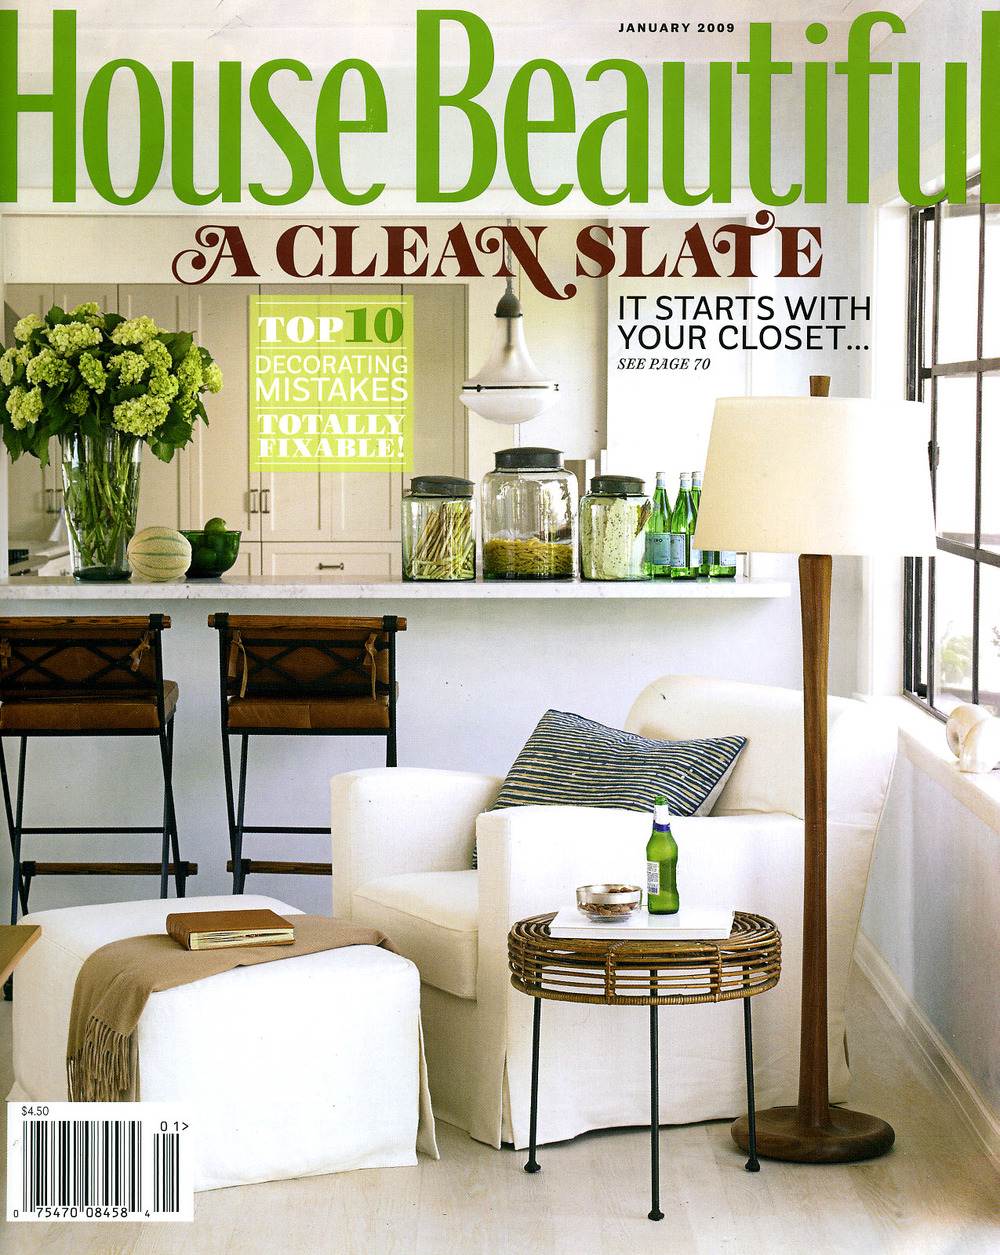 HouseBeatiful.Cover.01.09.jpg